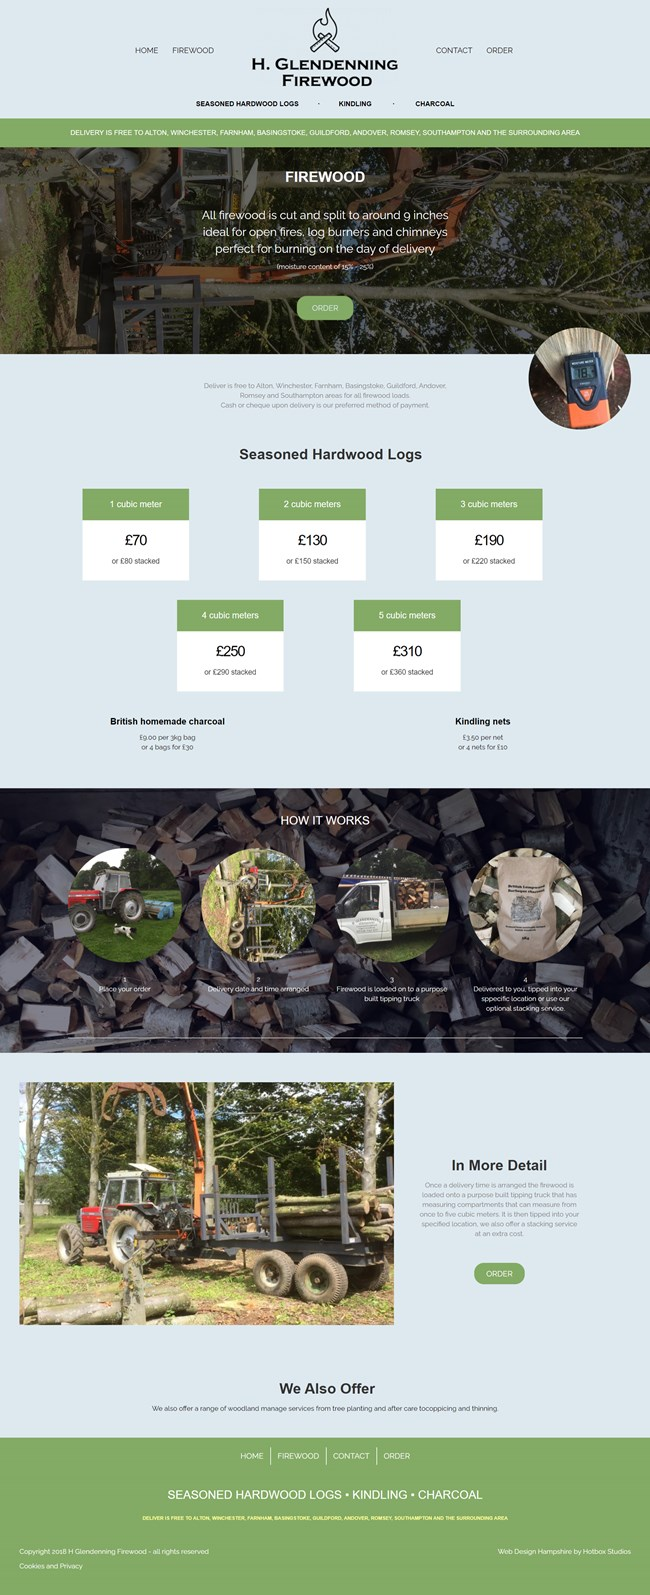 H Glendenning Firewood Website Design and WordPress Web Development SP002 Firewood